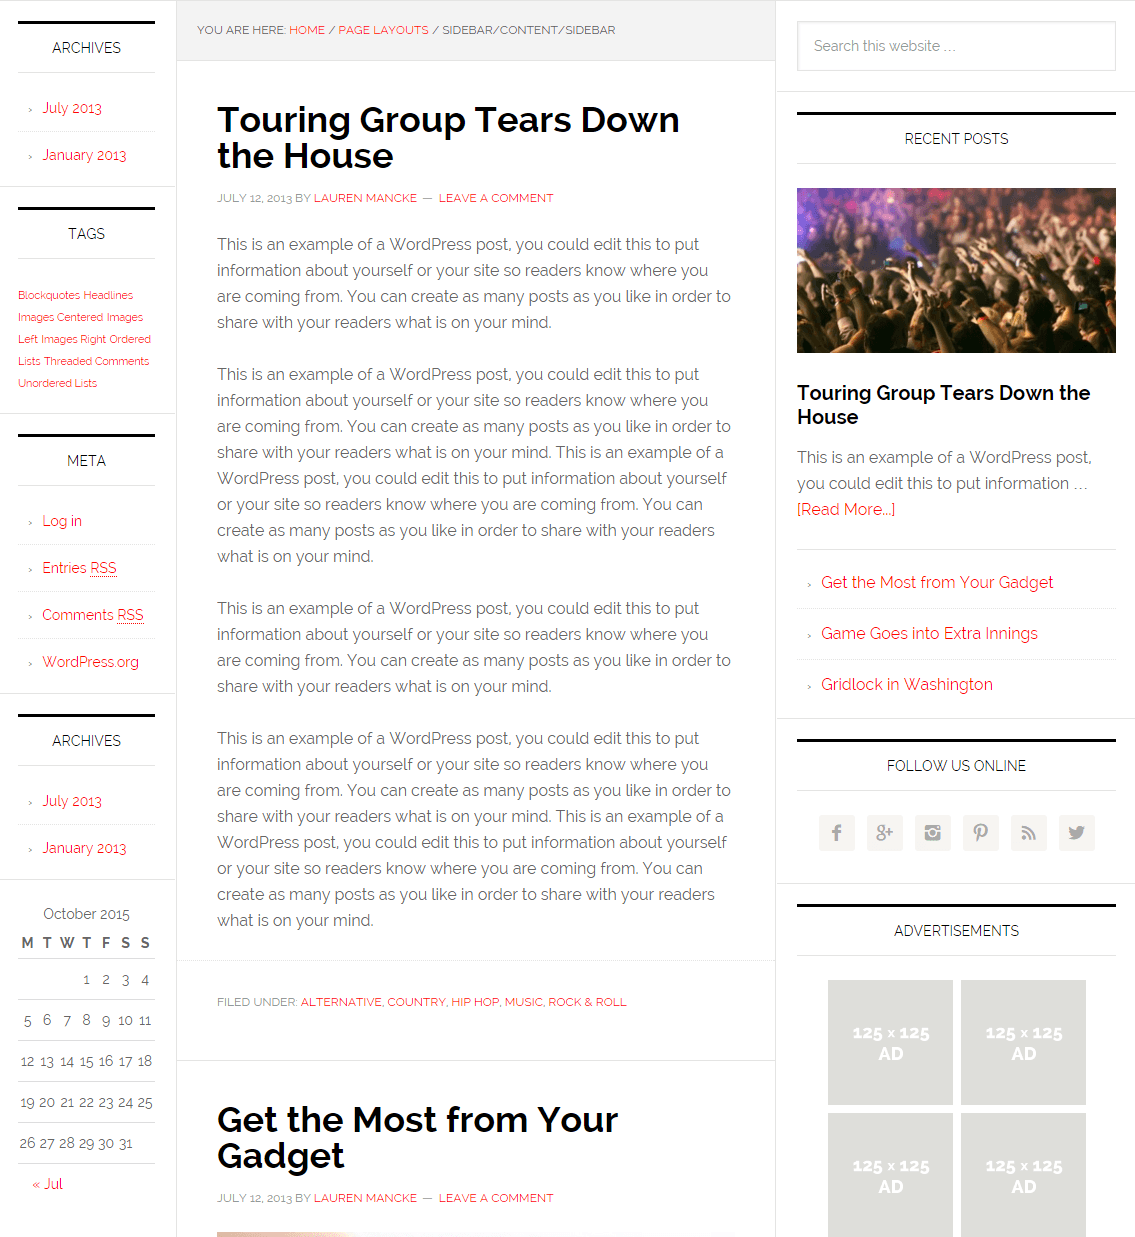 News Pro- Page layout with sidebar-content-sidebar pattern